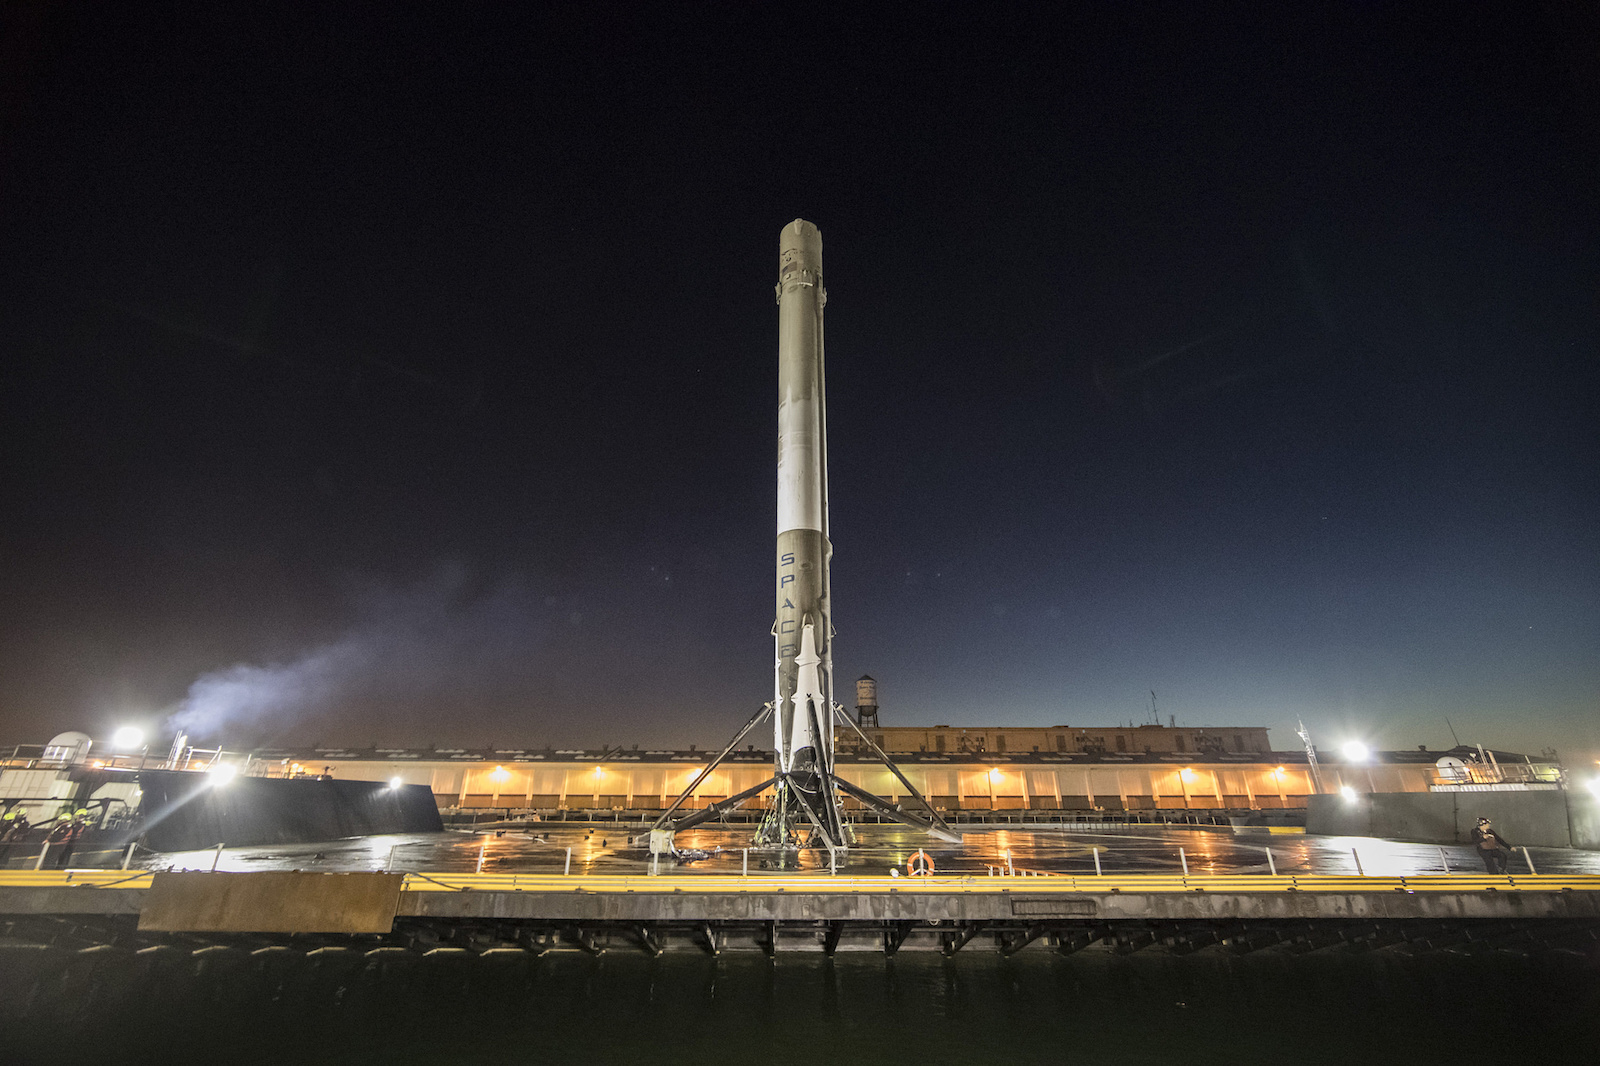 SpaceX-Falcon9-droneship-night